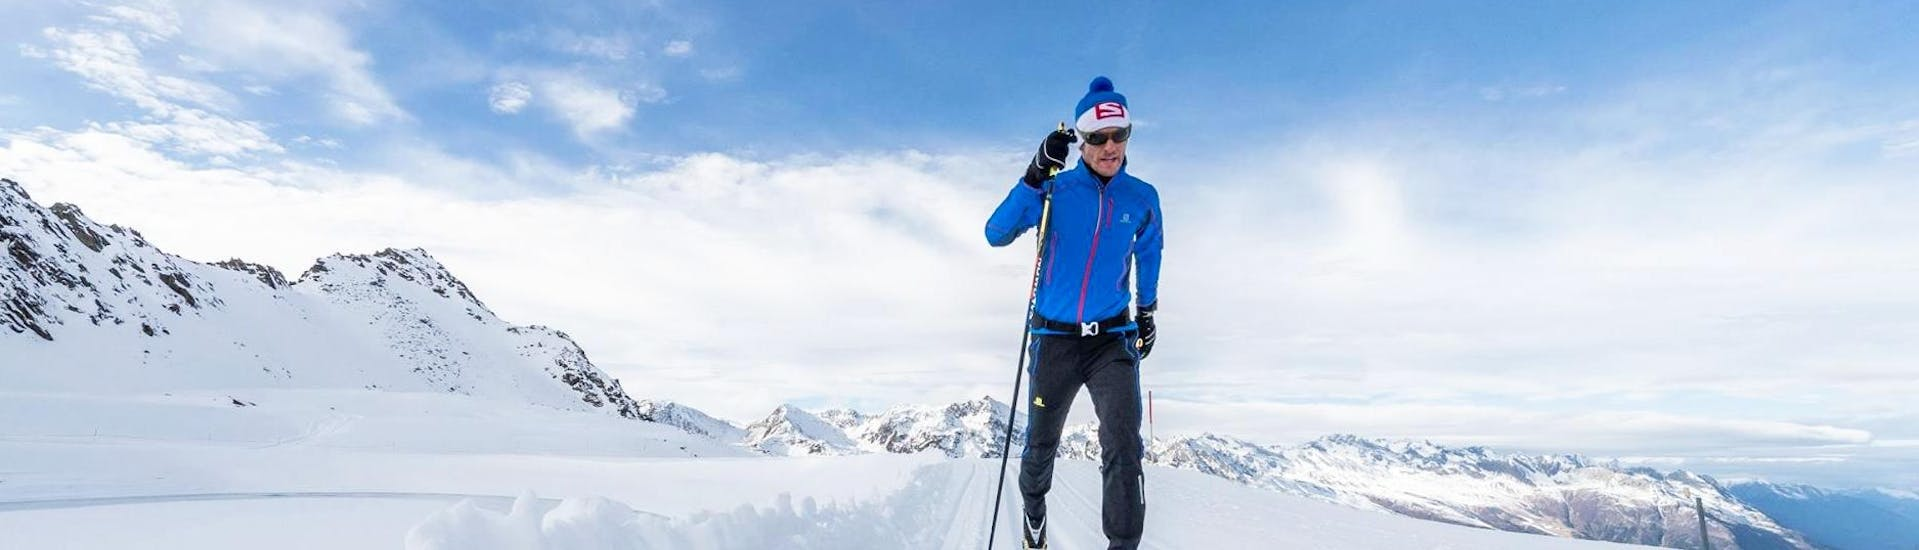 A participant of the Private Cross Country Skiing Lessons for All Levels with Schischule Hochgurgl is gliding through the beautiful winter landscape of the Obergurgl-Hochgurgl ski resort.